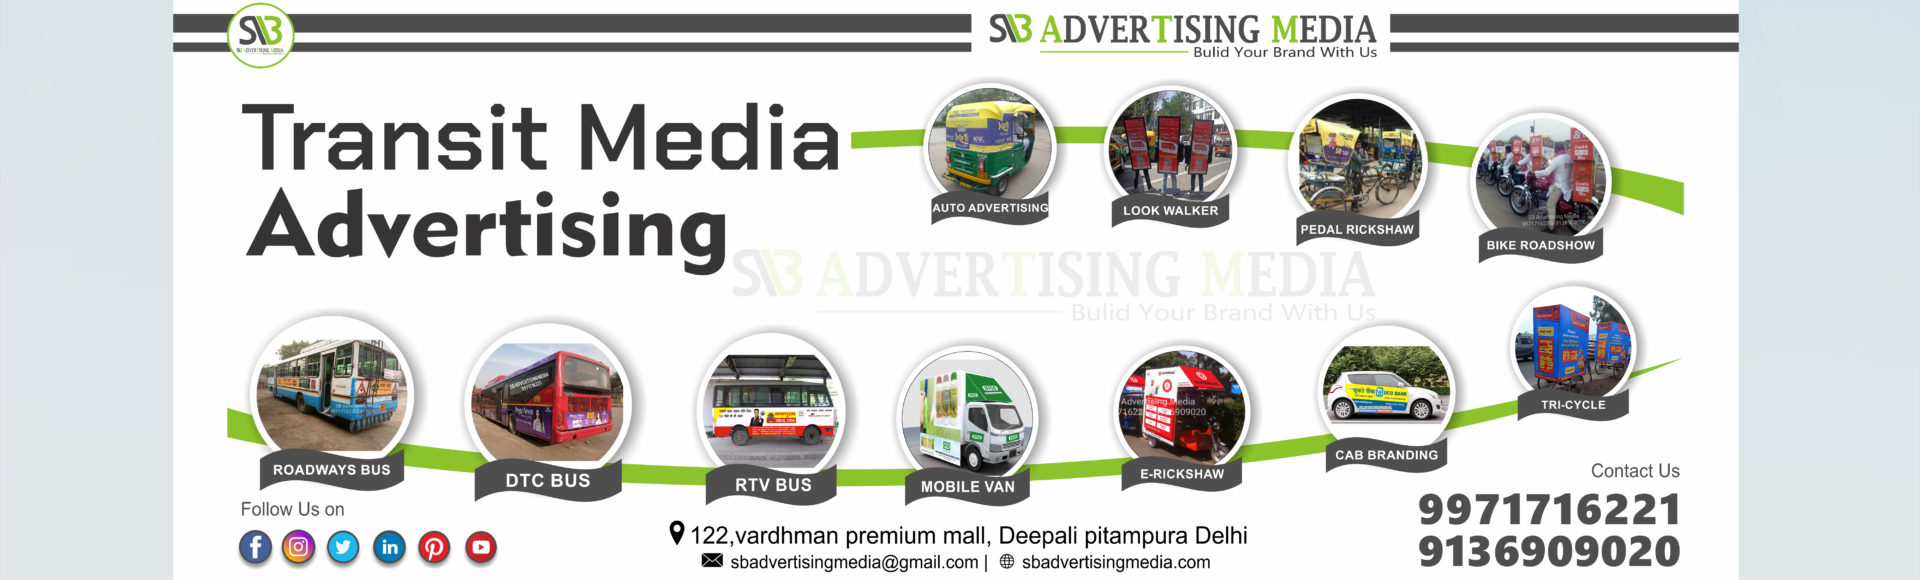 transit-media-advertising-banner